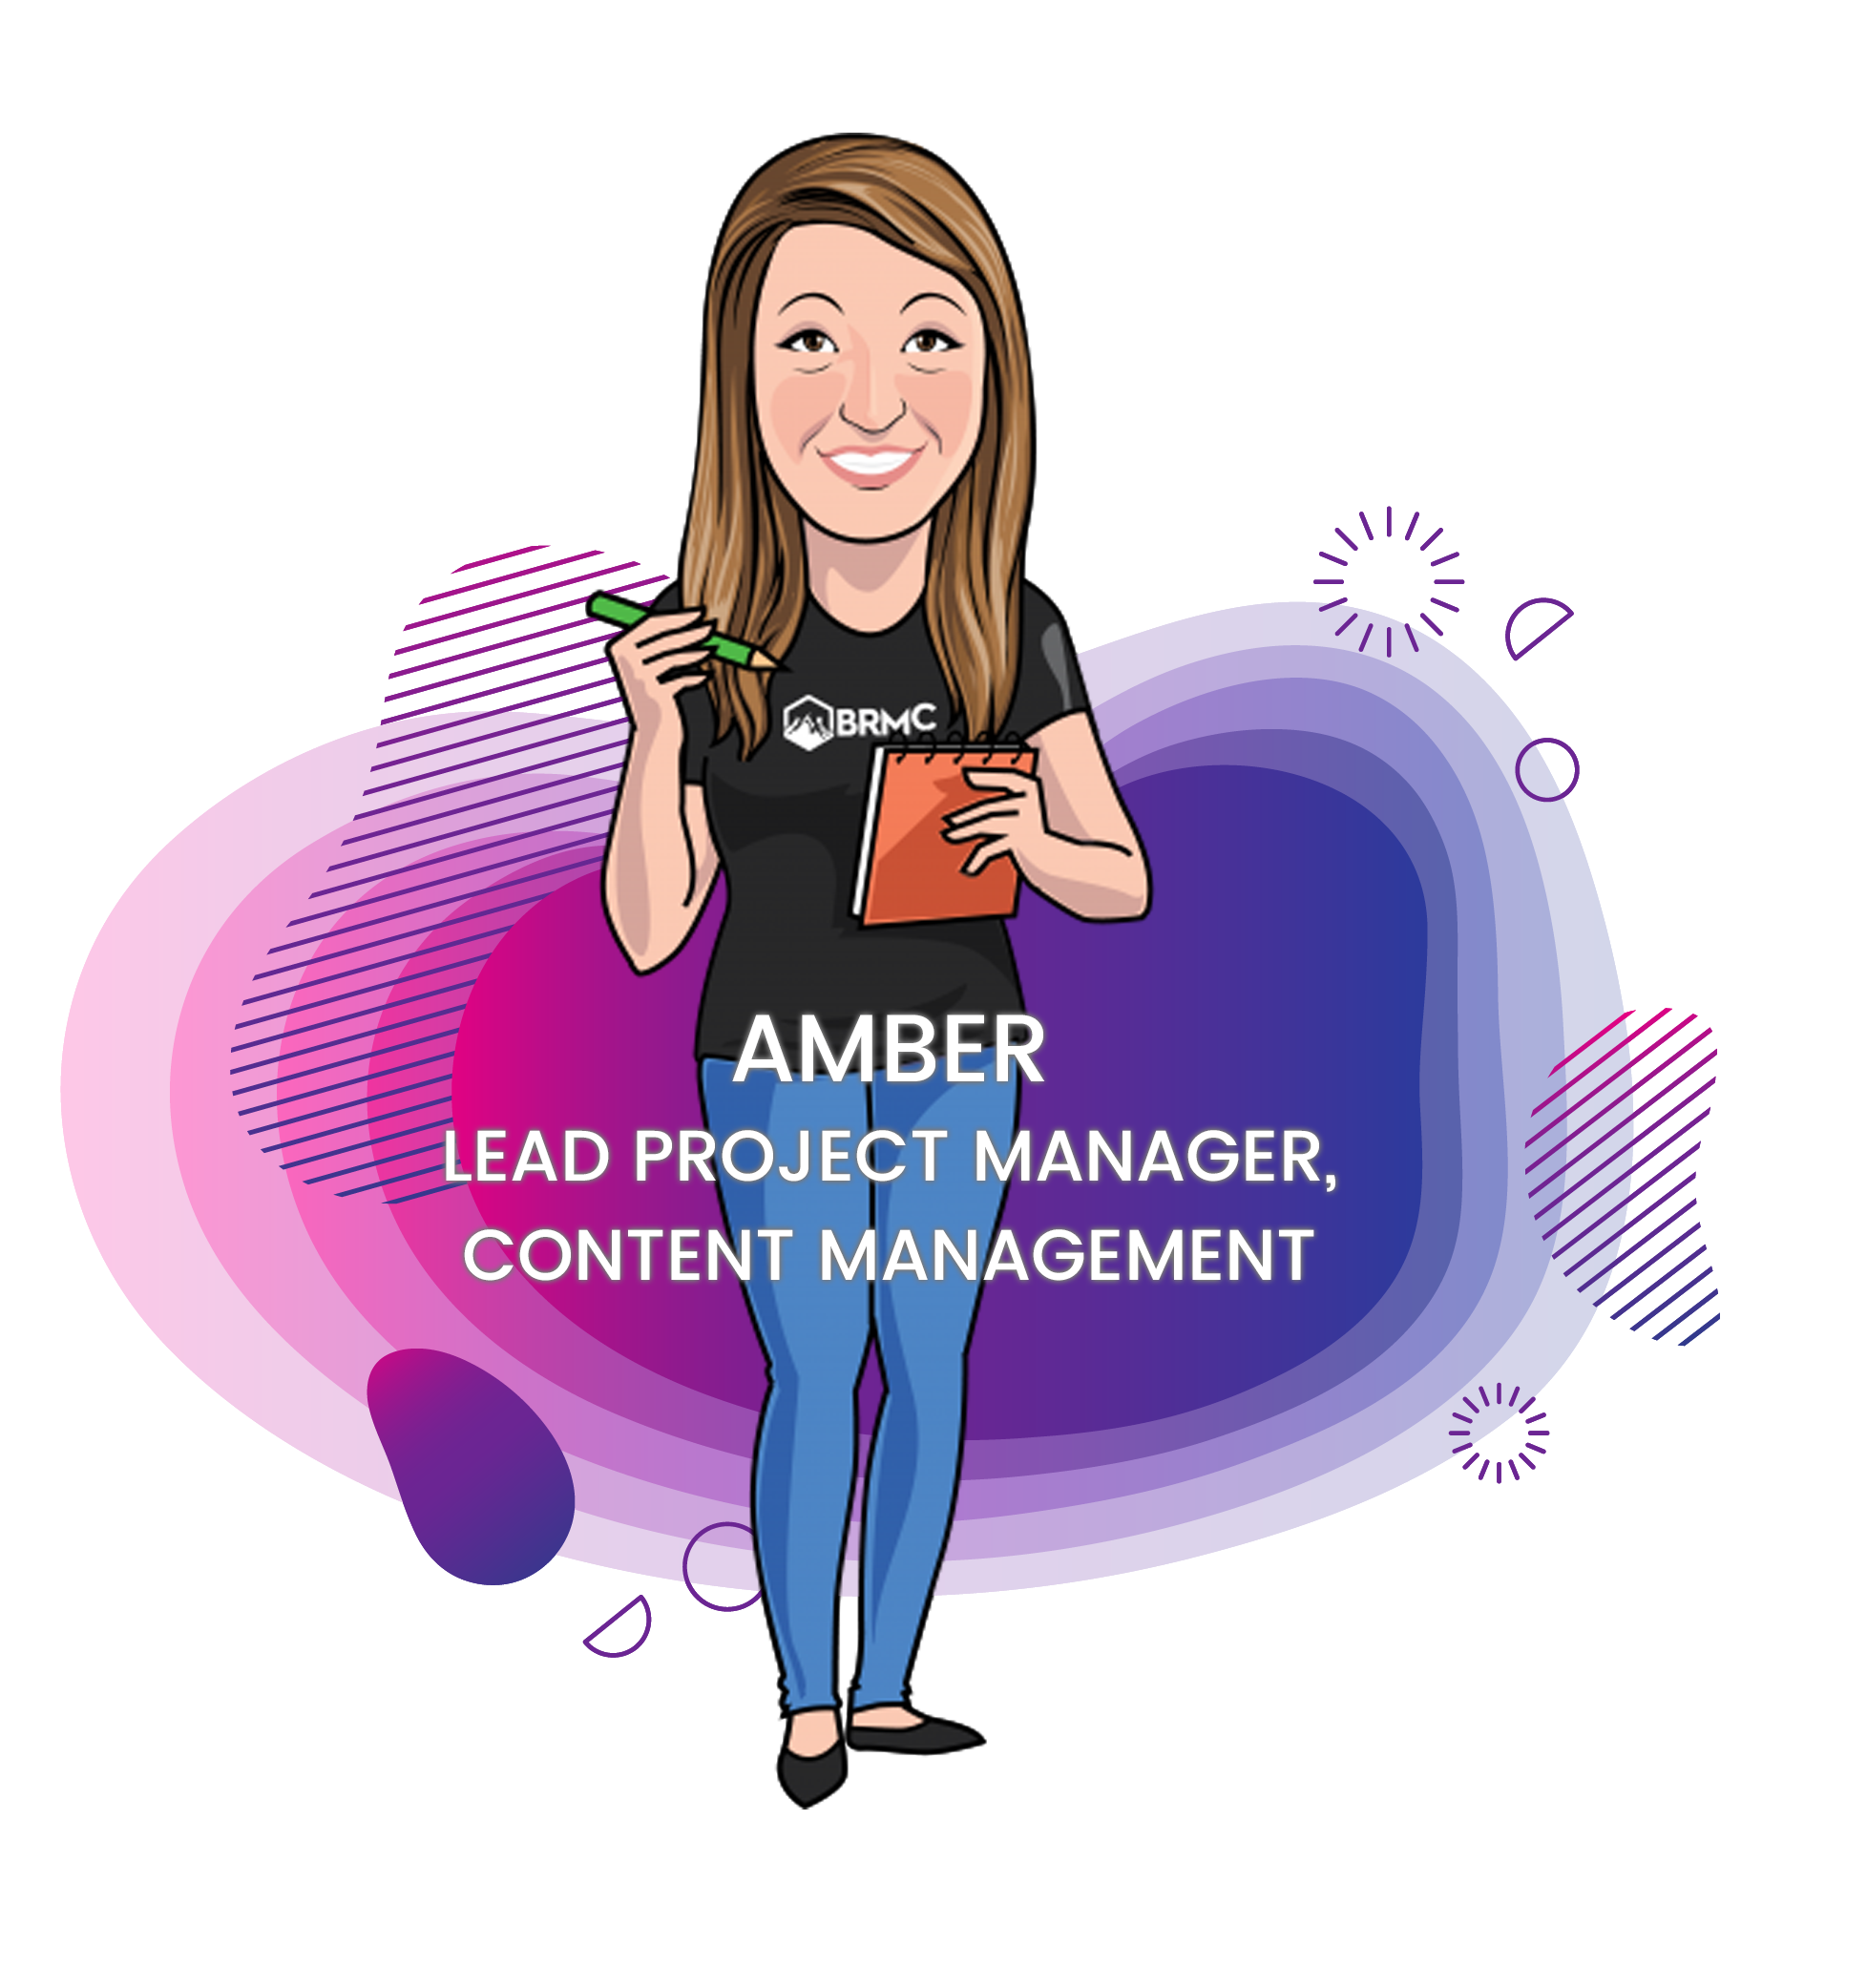 Amber Lead Project Manager, Content Management